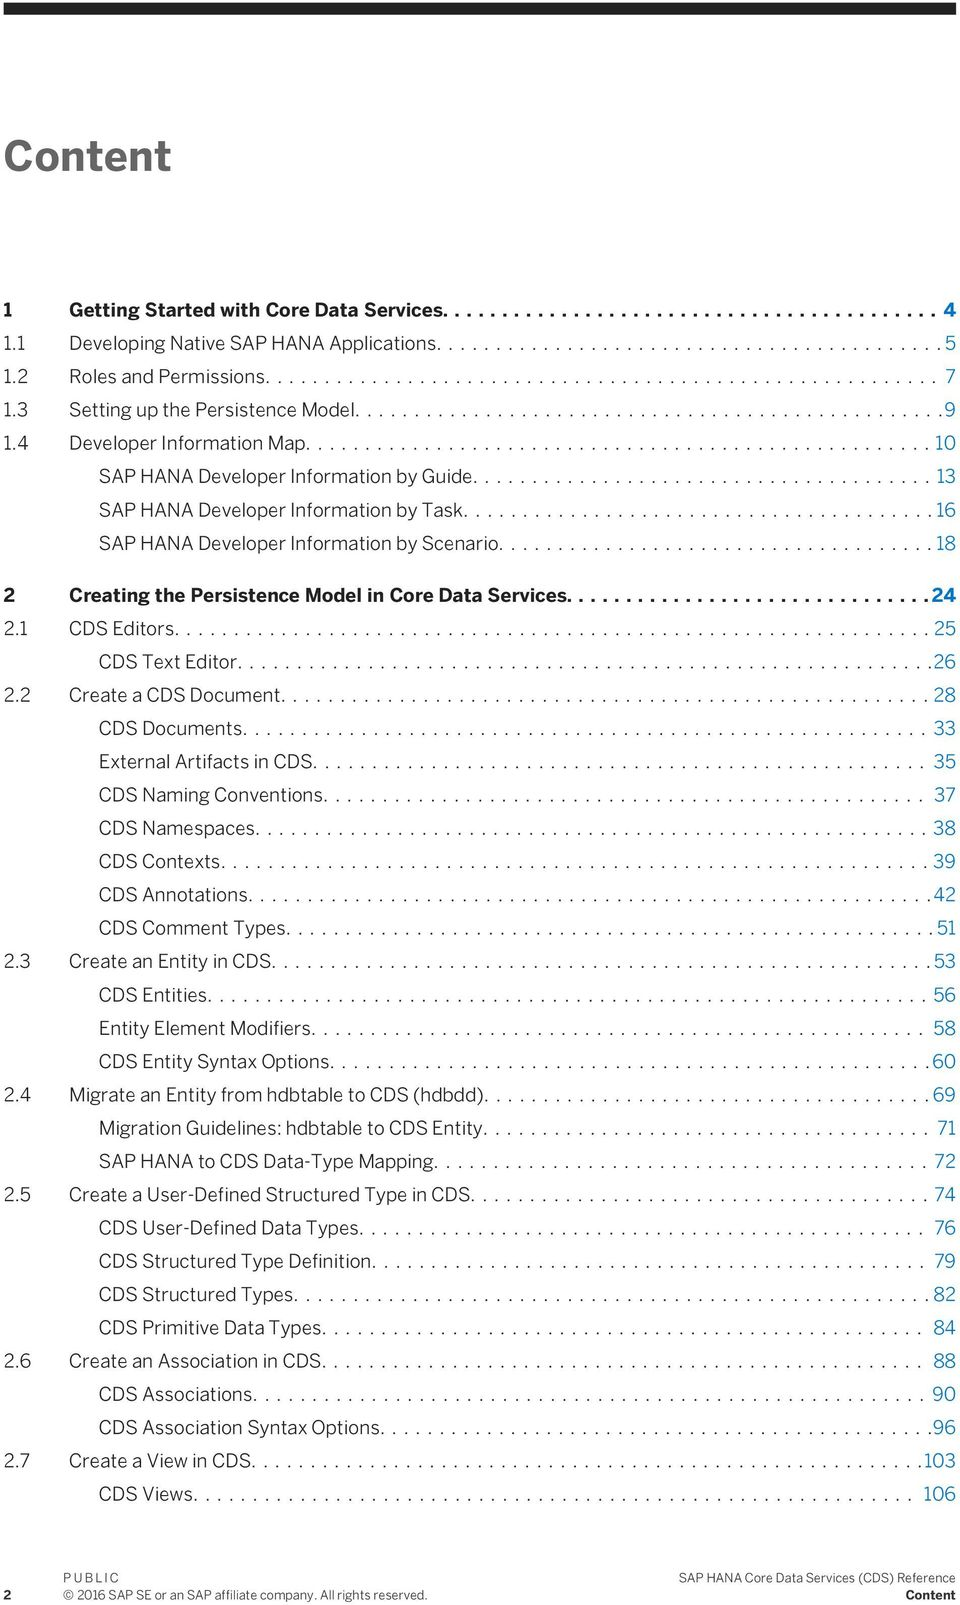 SAP HANA Core Data Services (CDS) Reference - PDF